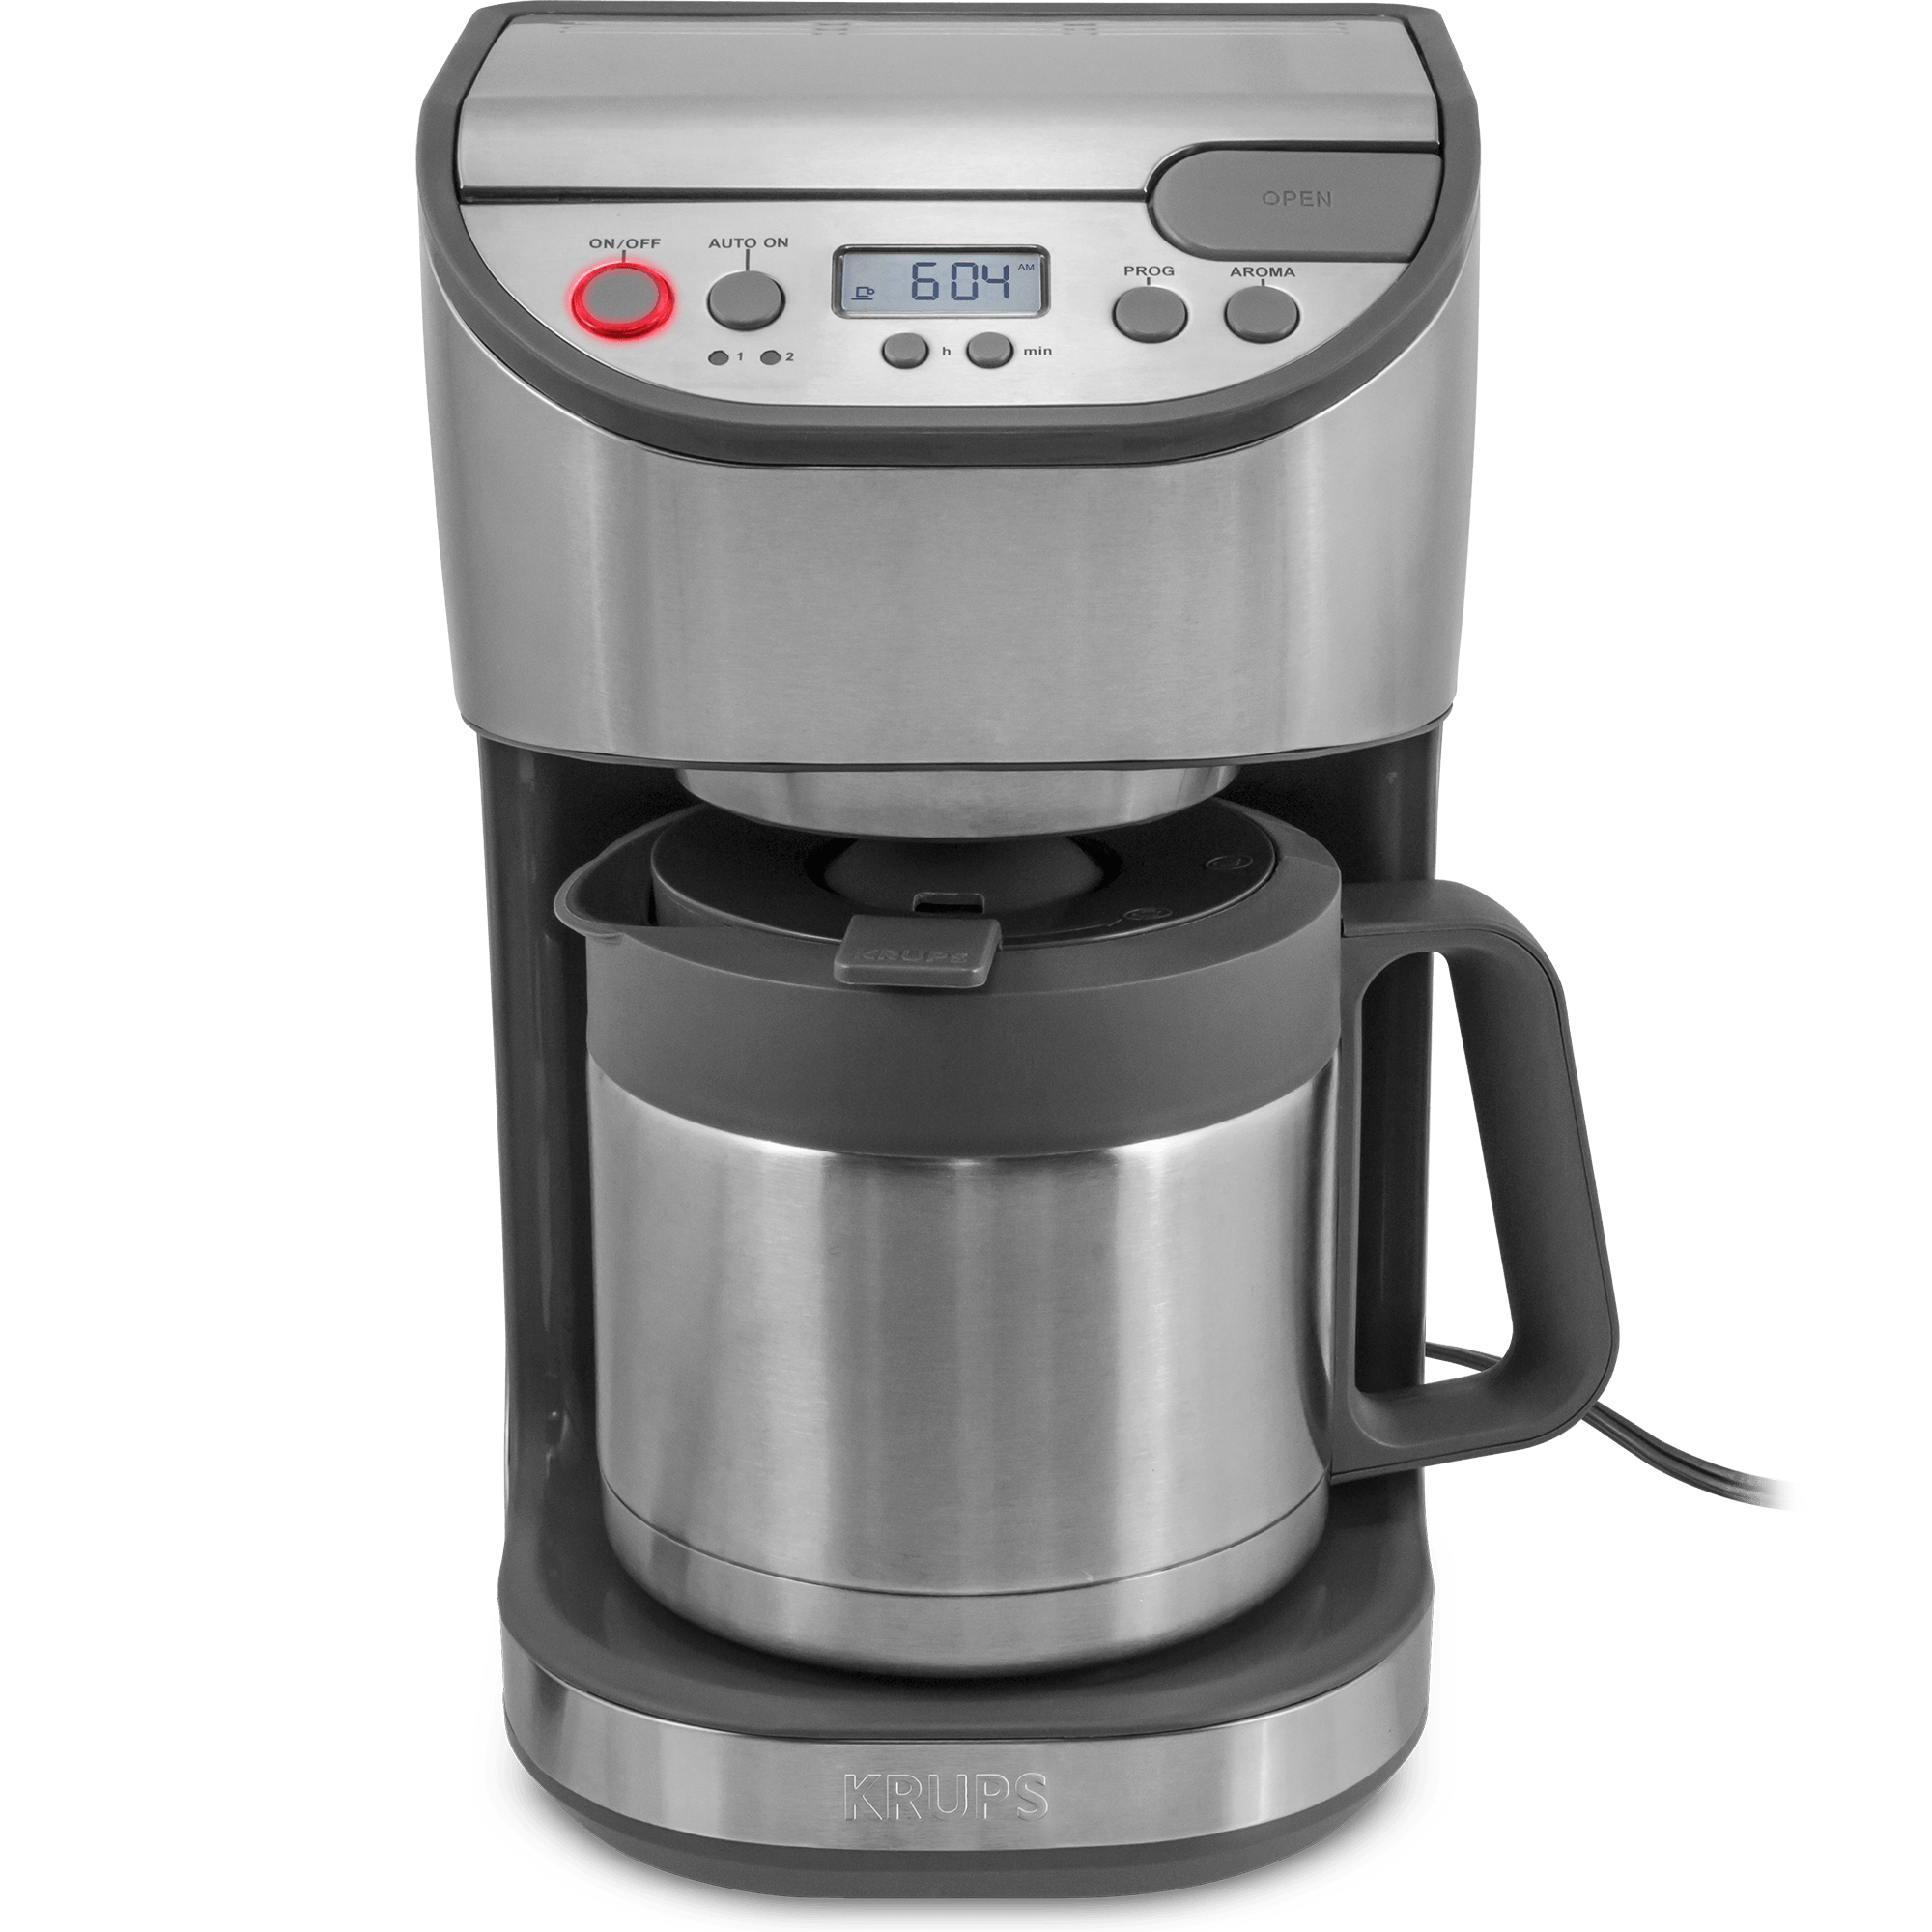 KRUPS Programmable Steel Carafe Coffee Maker (Refurbished)